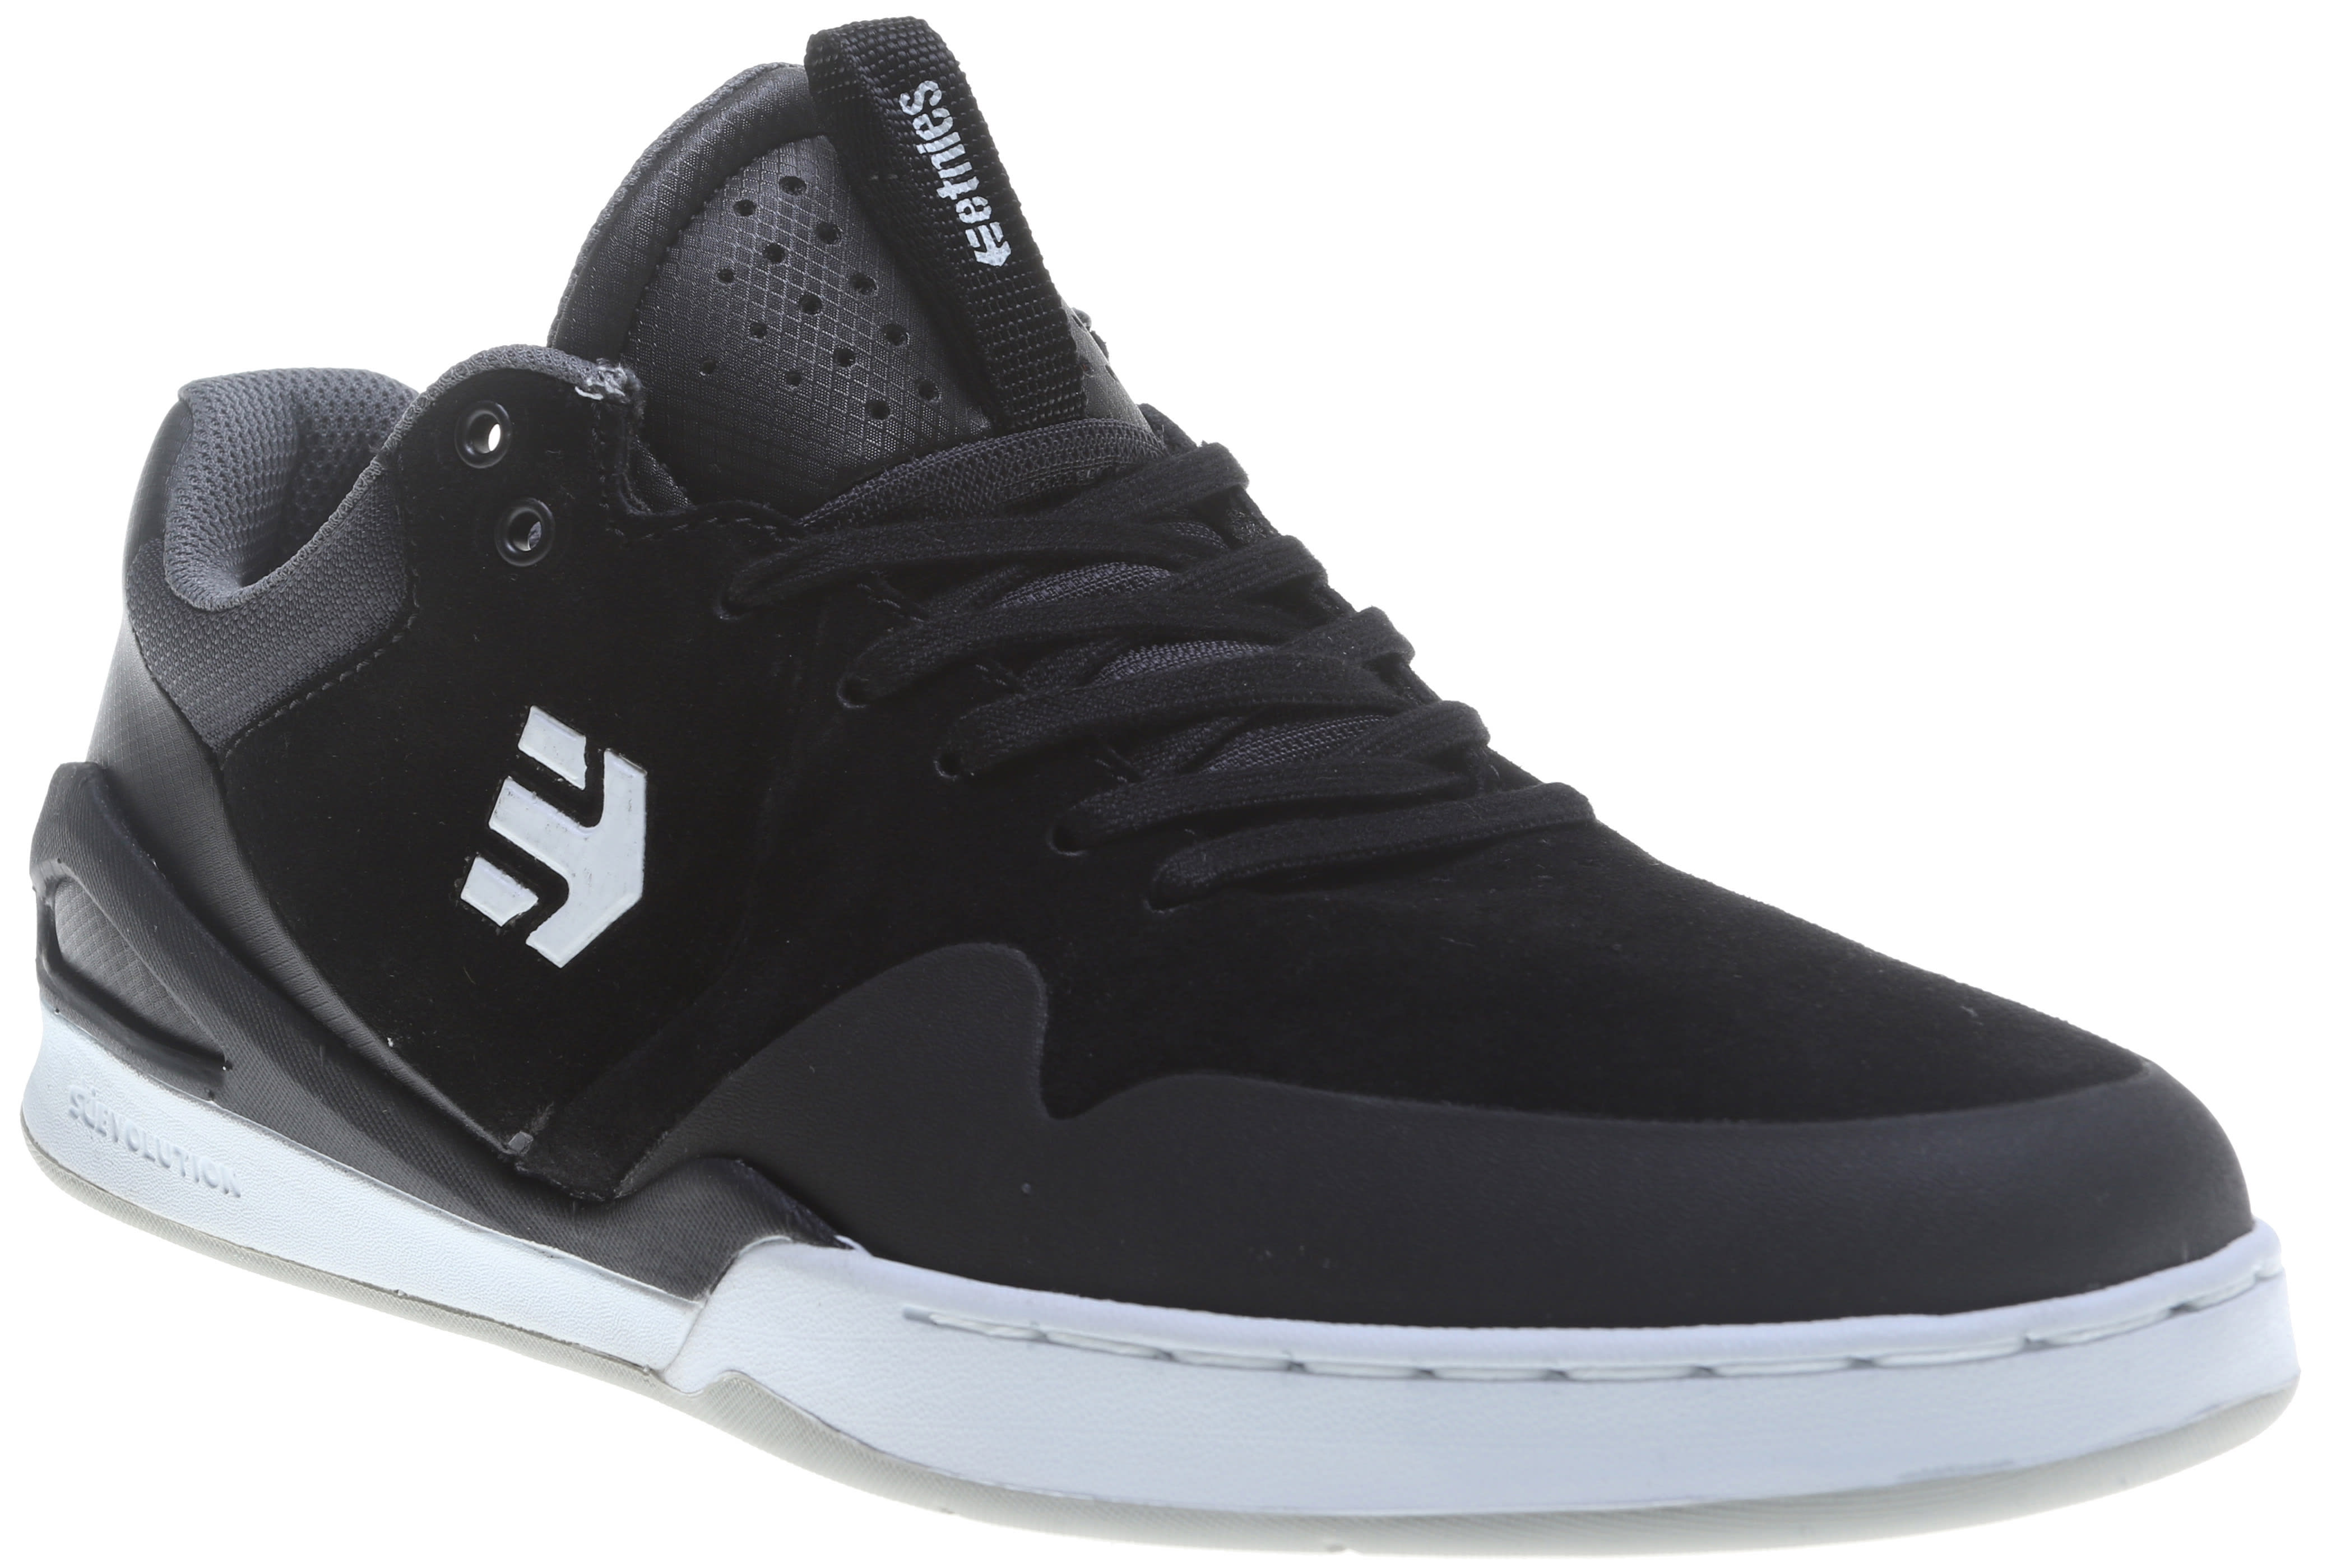 Cheap Etnies Skate Shoes